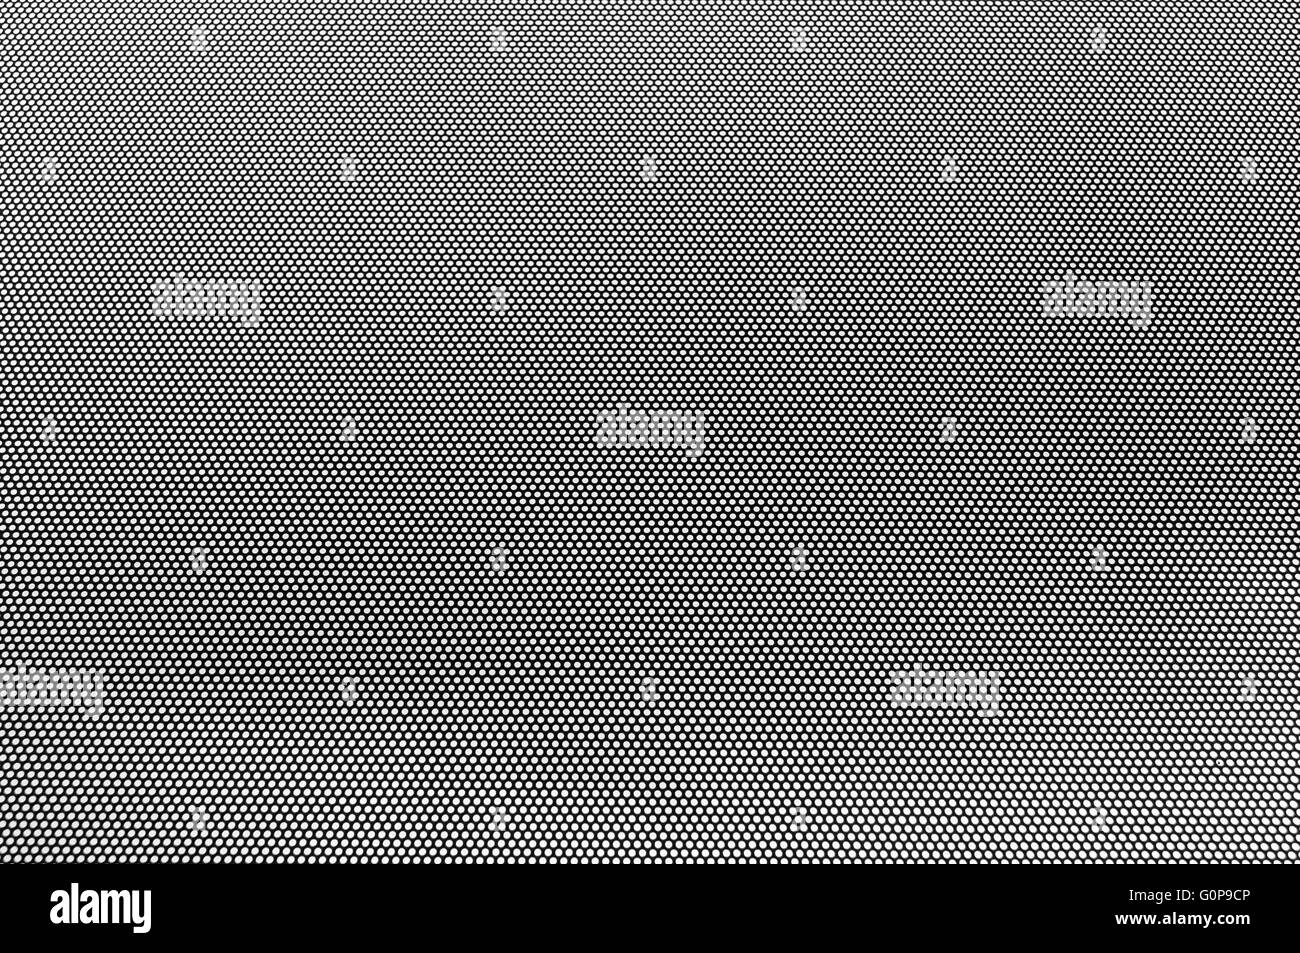 dot mask in front of greyish overcast sky psychedelic effect - Stock Image